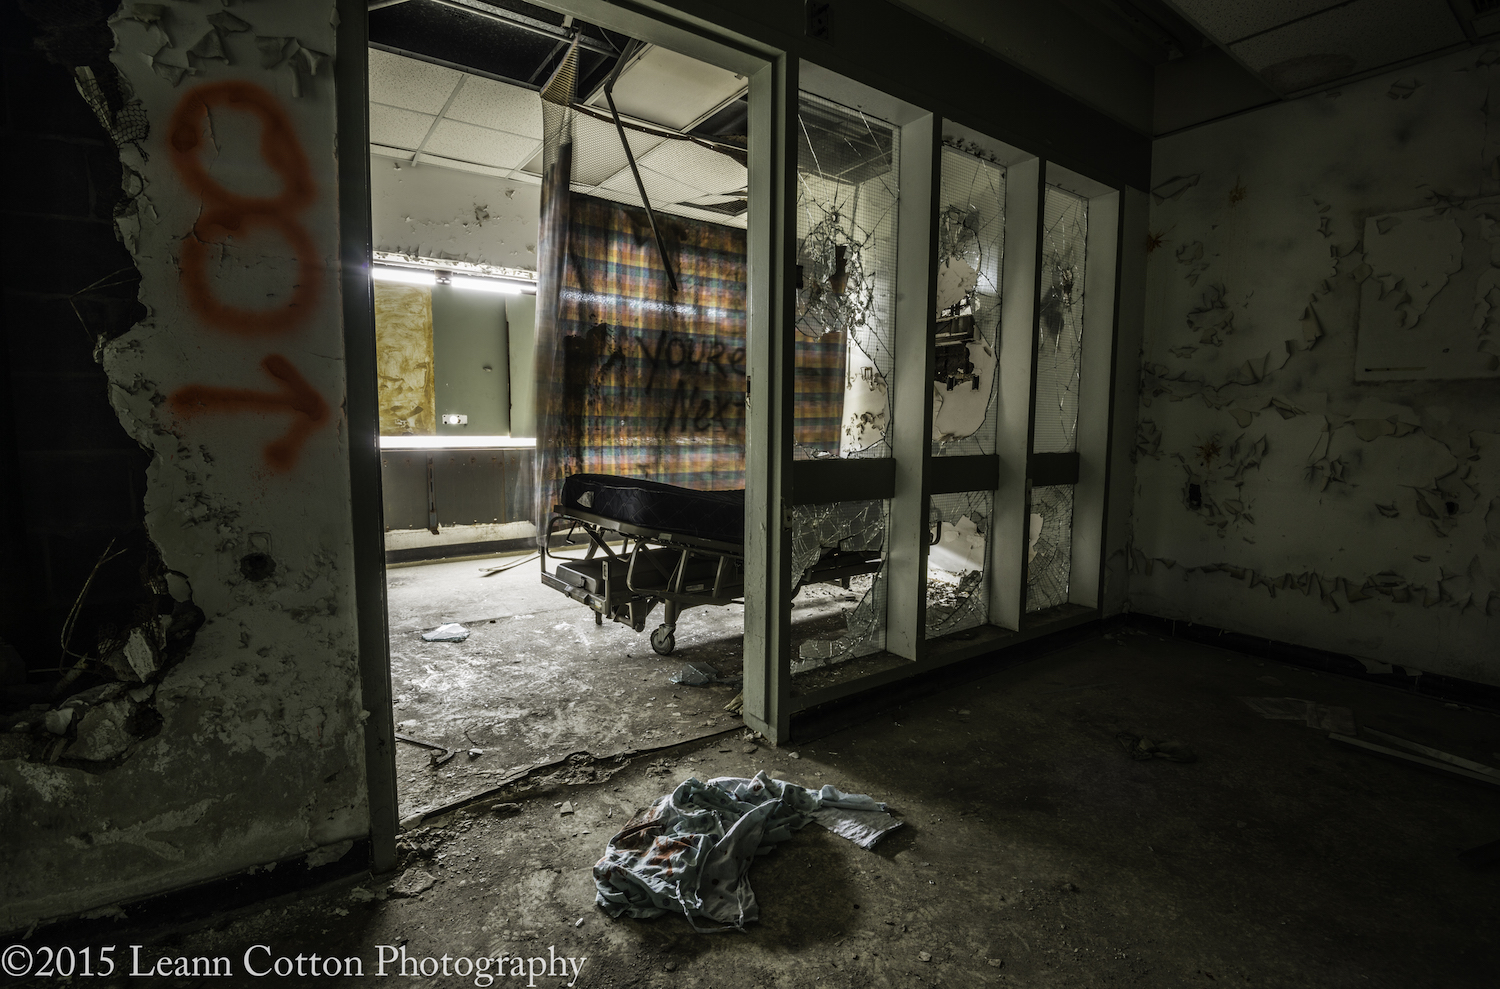 Bullets, Graffiti, & Axe-Wielding Strangers: An Ode to Urbex